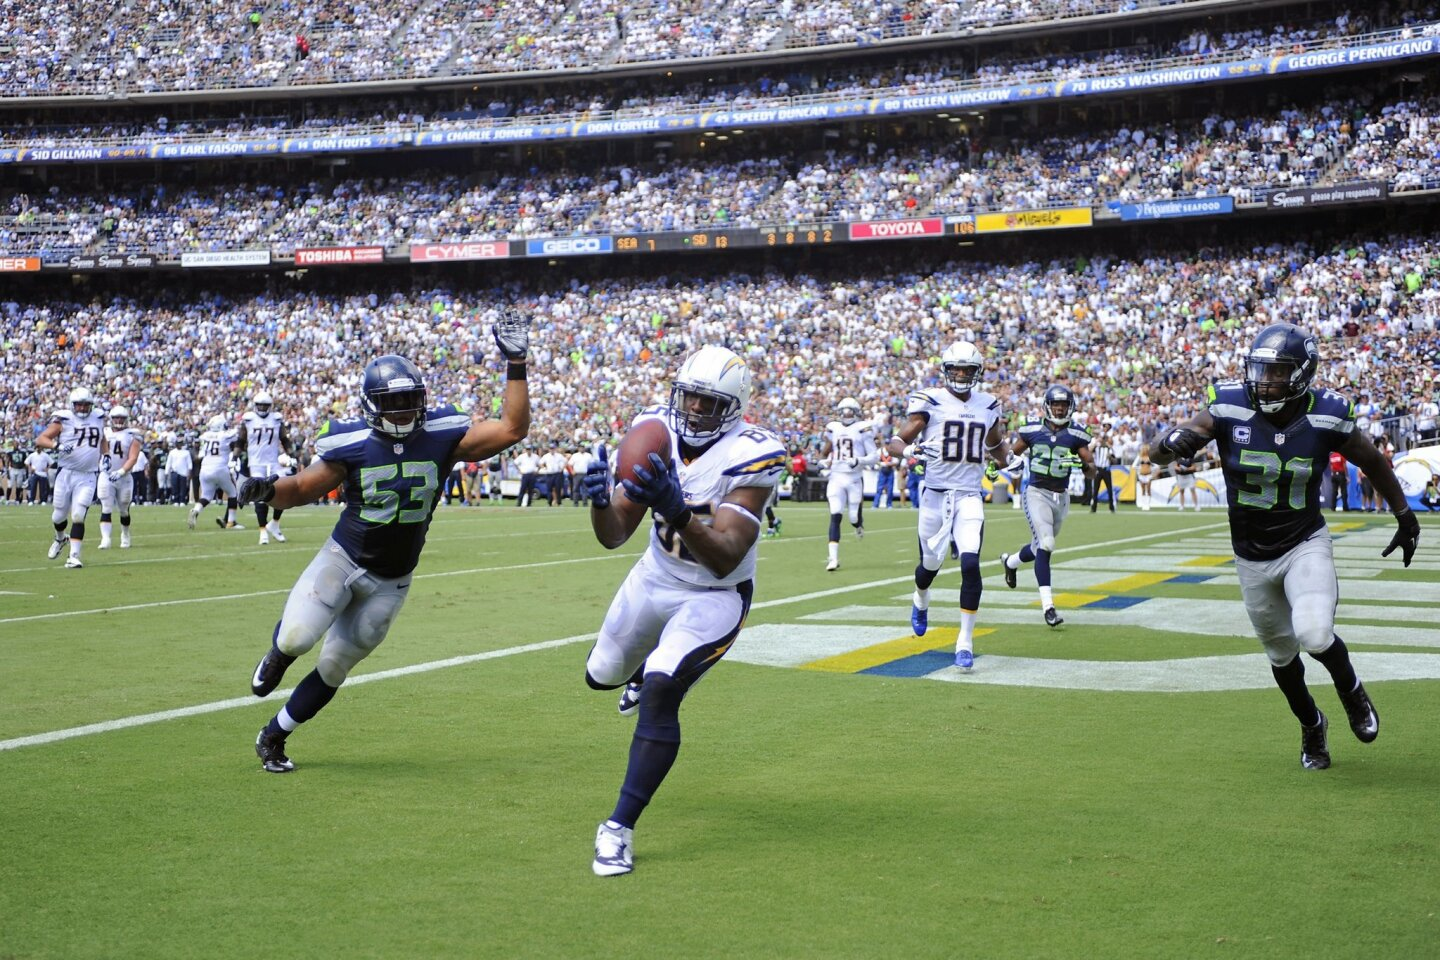 Chargers Antonio Gates catches a touchdown past Seattle's Malcolm Smith in the 2nd quarter.